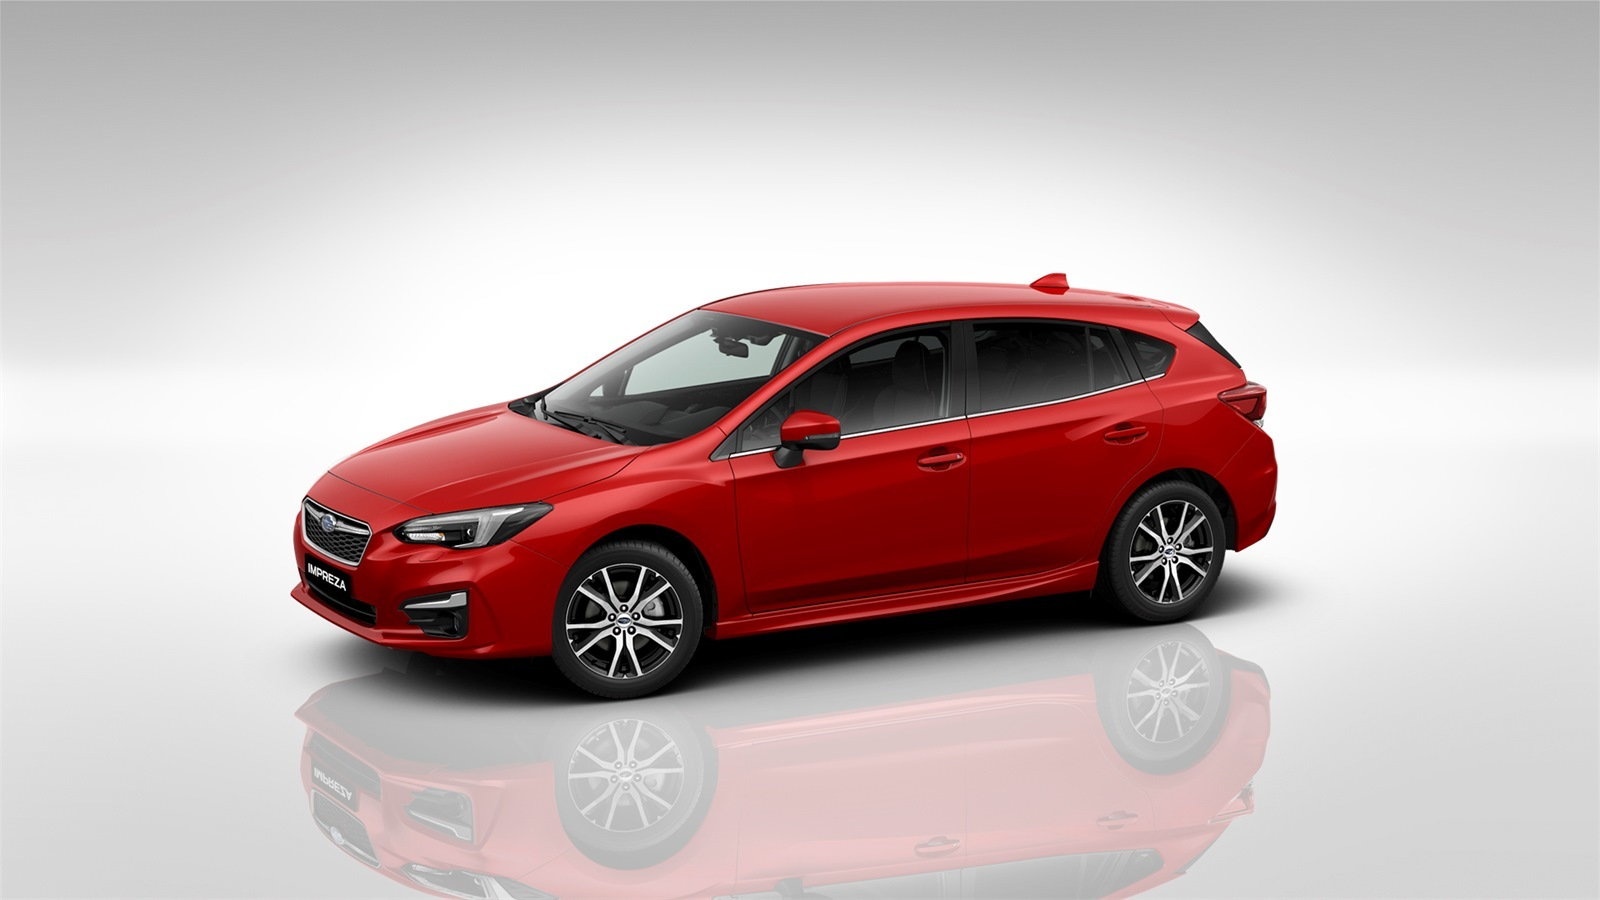 subaru impreza - Available in Pure Red